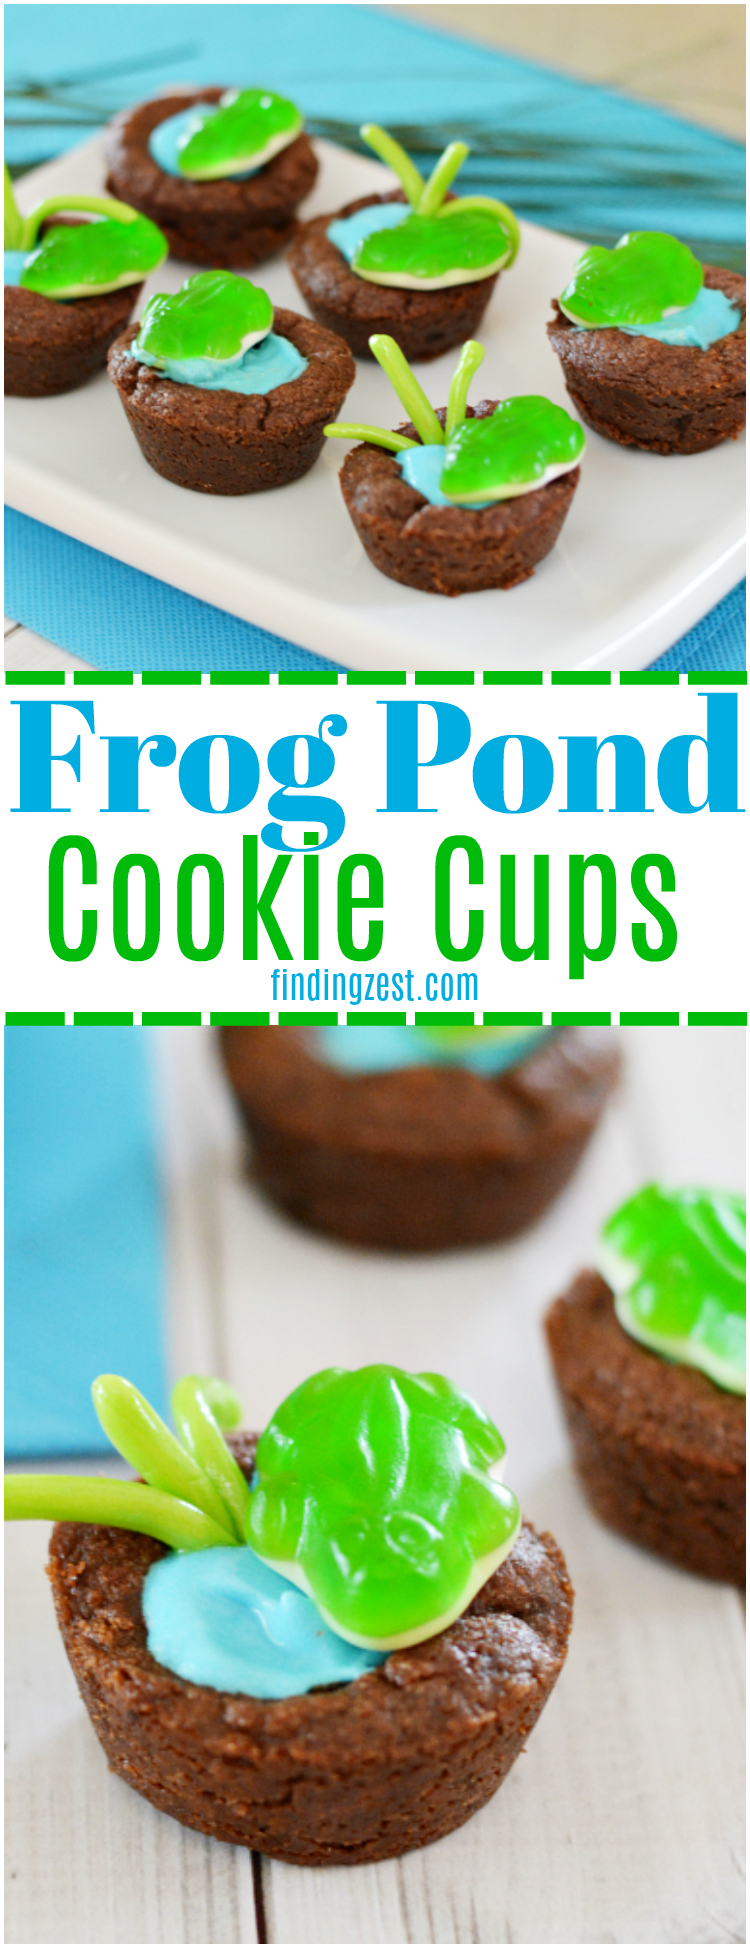 See how easy it is to make frog pond cookie cups. These kid-friendly treats celebrate nature and fit a frog birthday party or spring occasion!